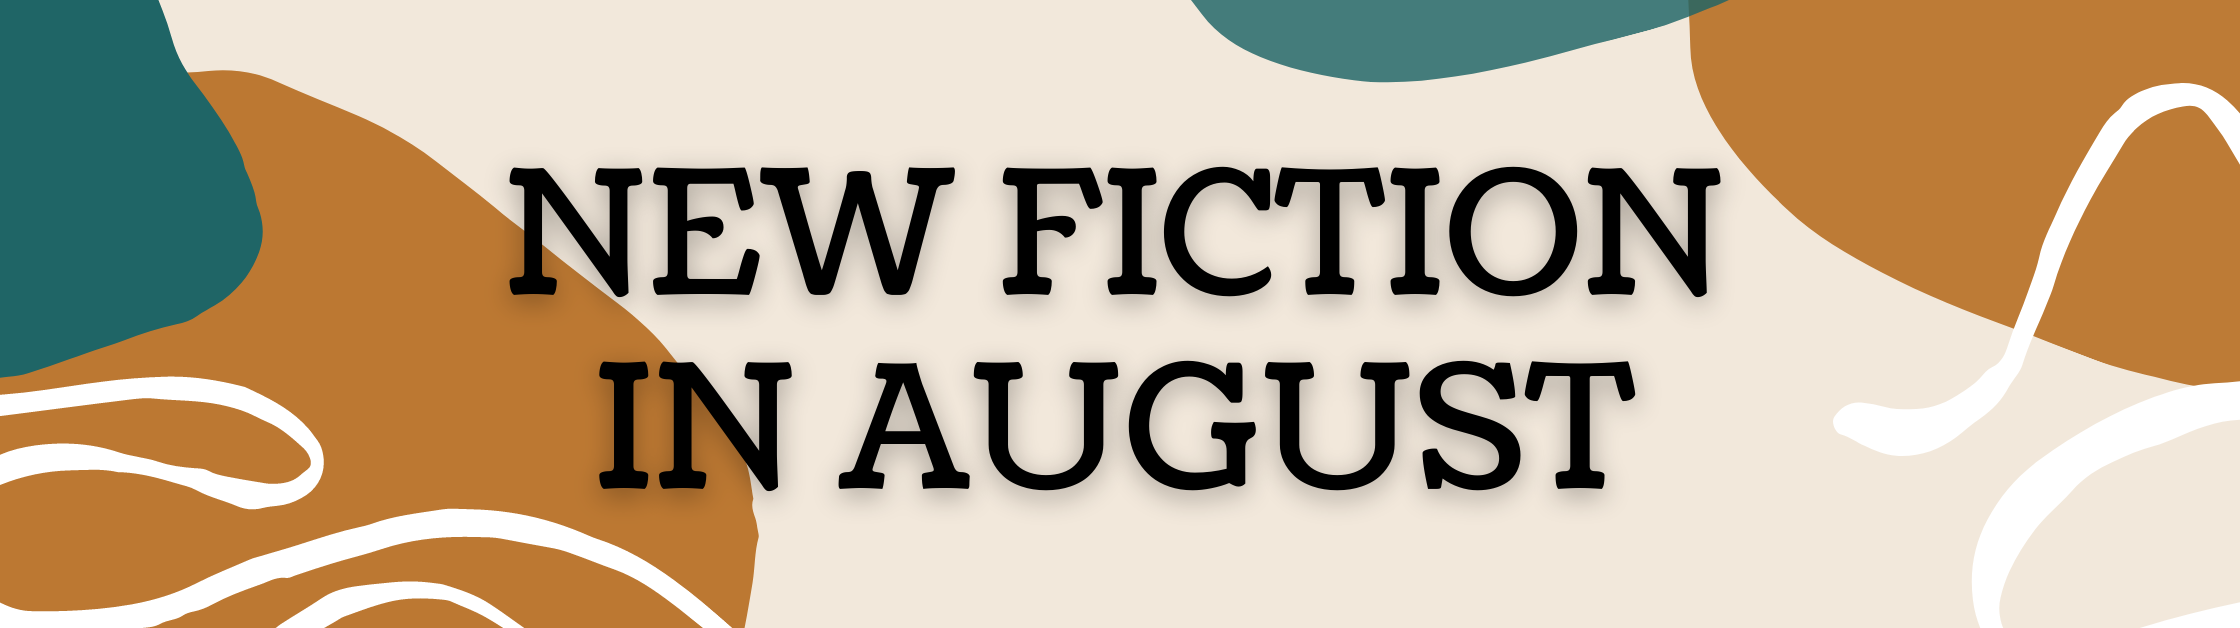 New fiction in August